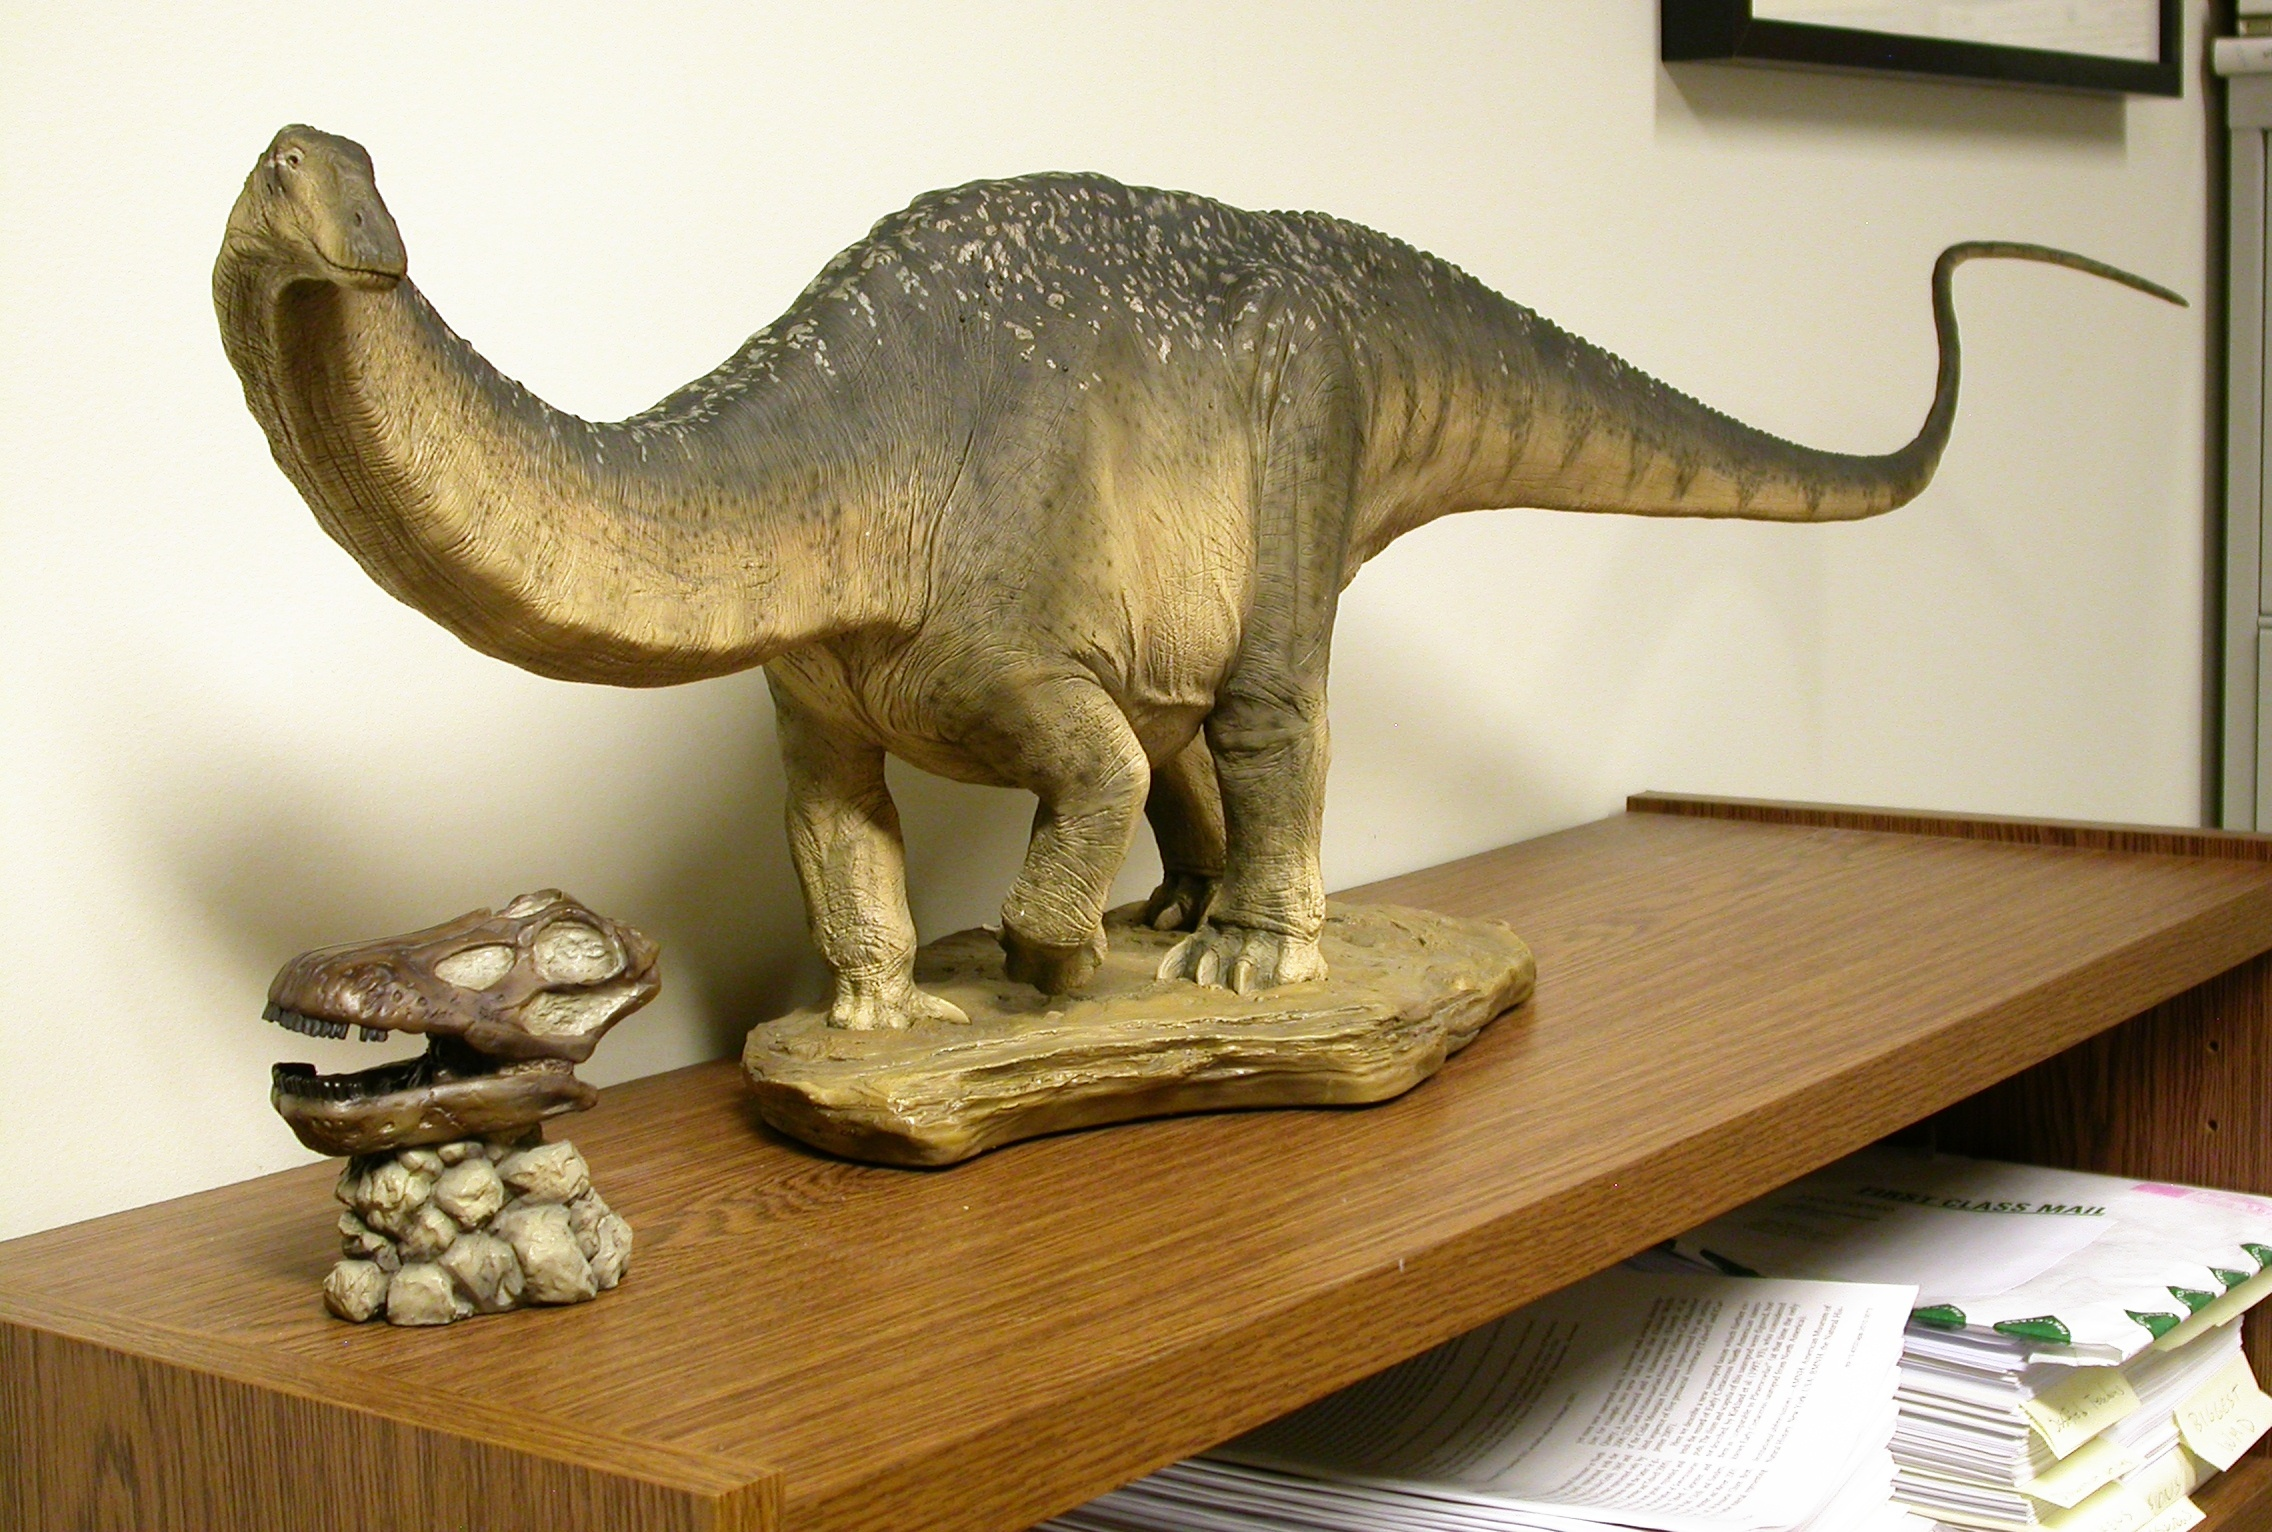 Sideshow Collectibles Apatosaurus Maquette Part 4 Body